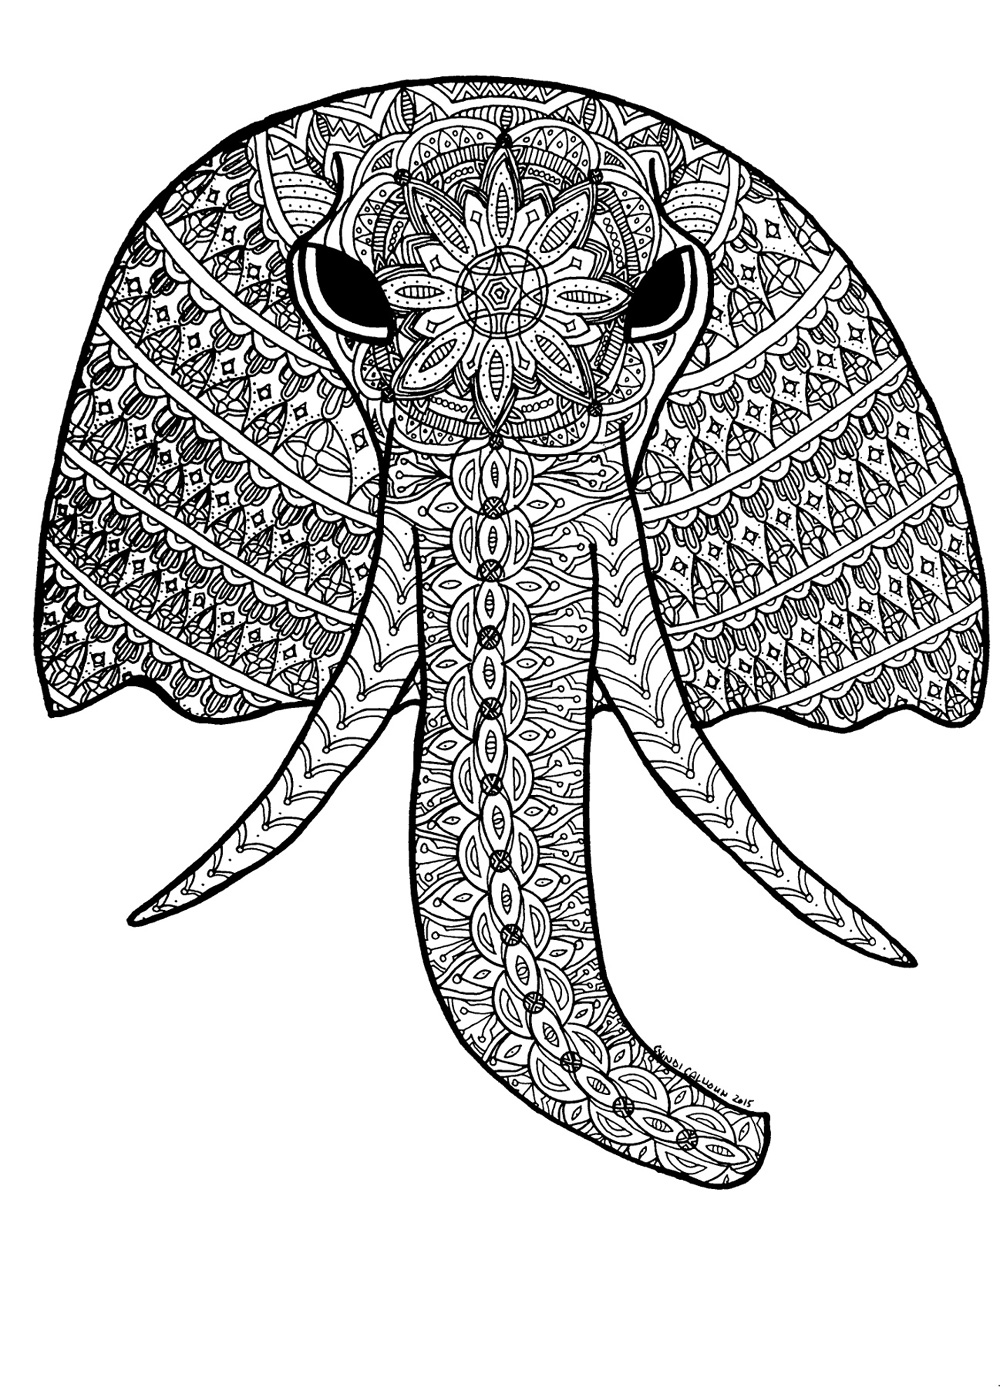 Elephant coloring pages free - Elephant Coloring Pages For Adults Free Download